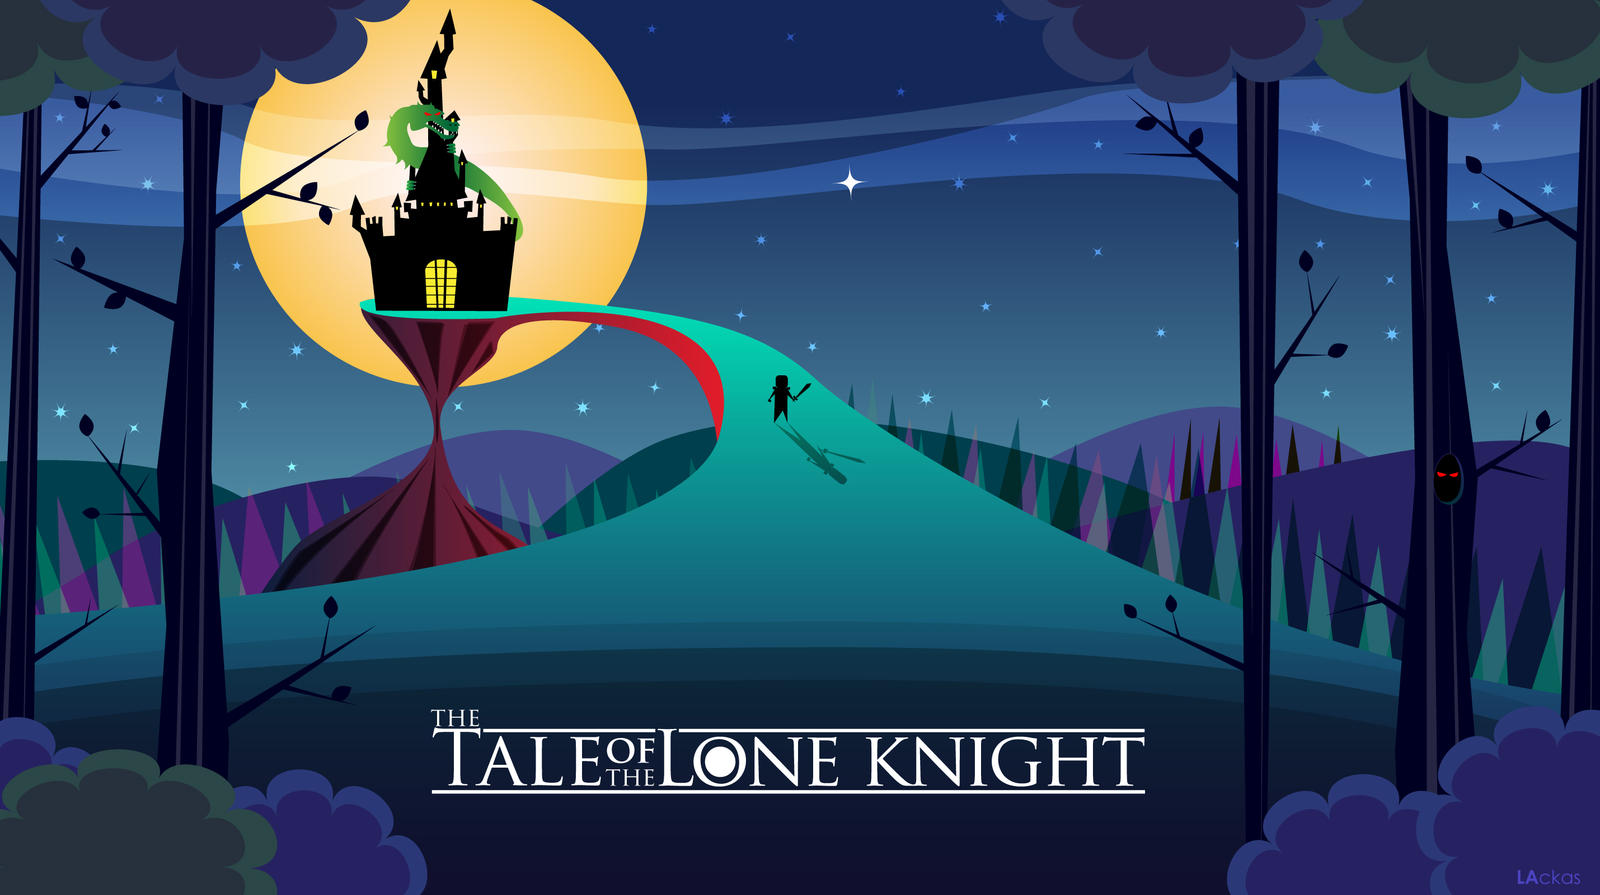 The tale of the lone knight by LAckas